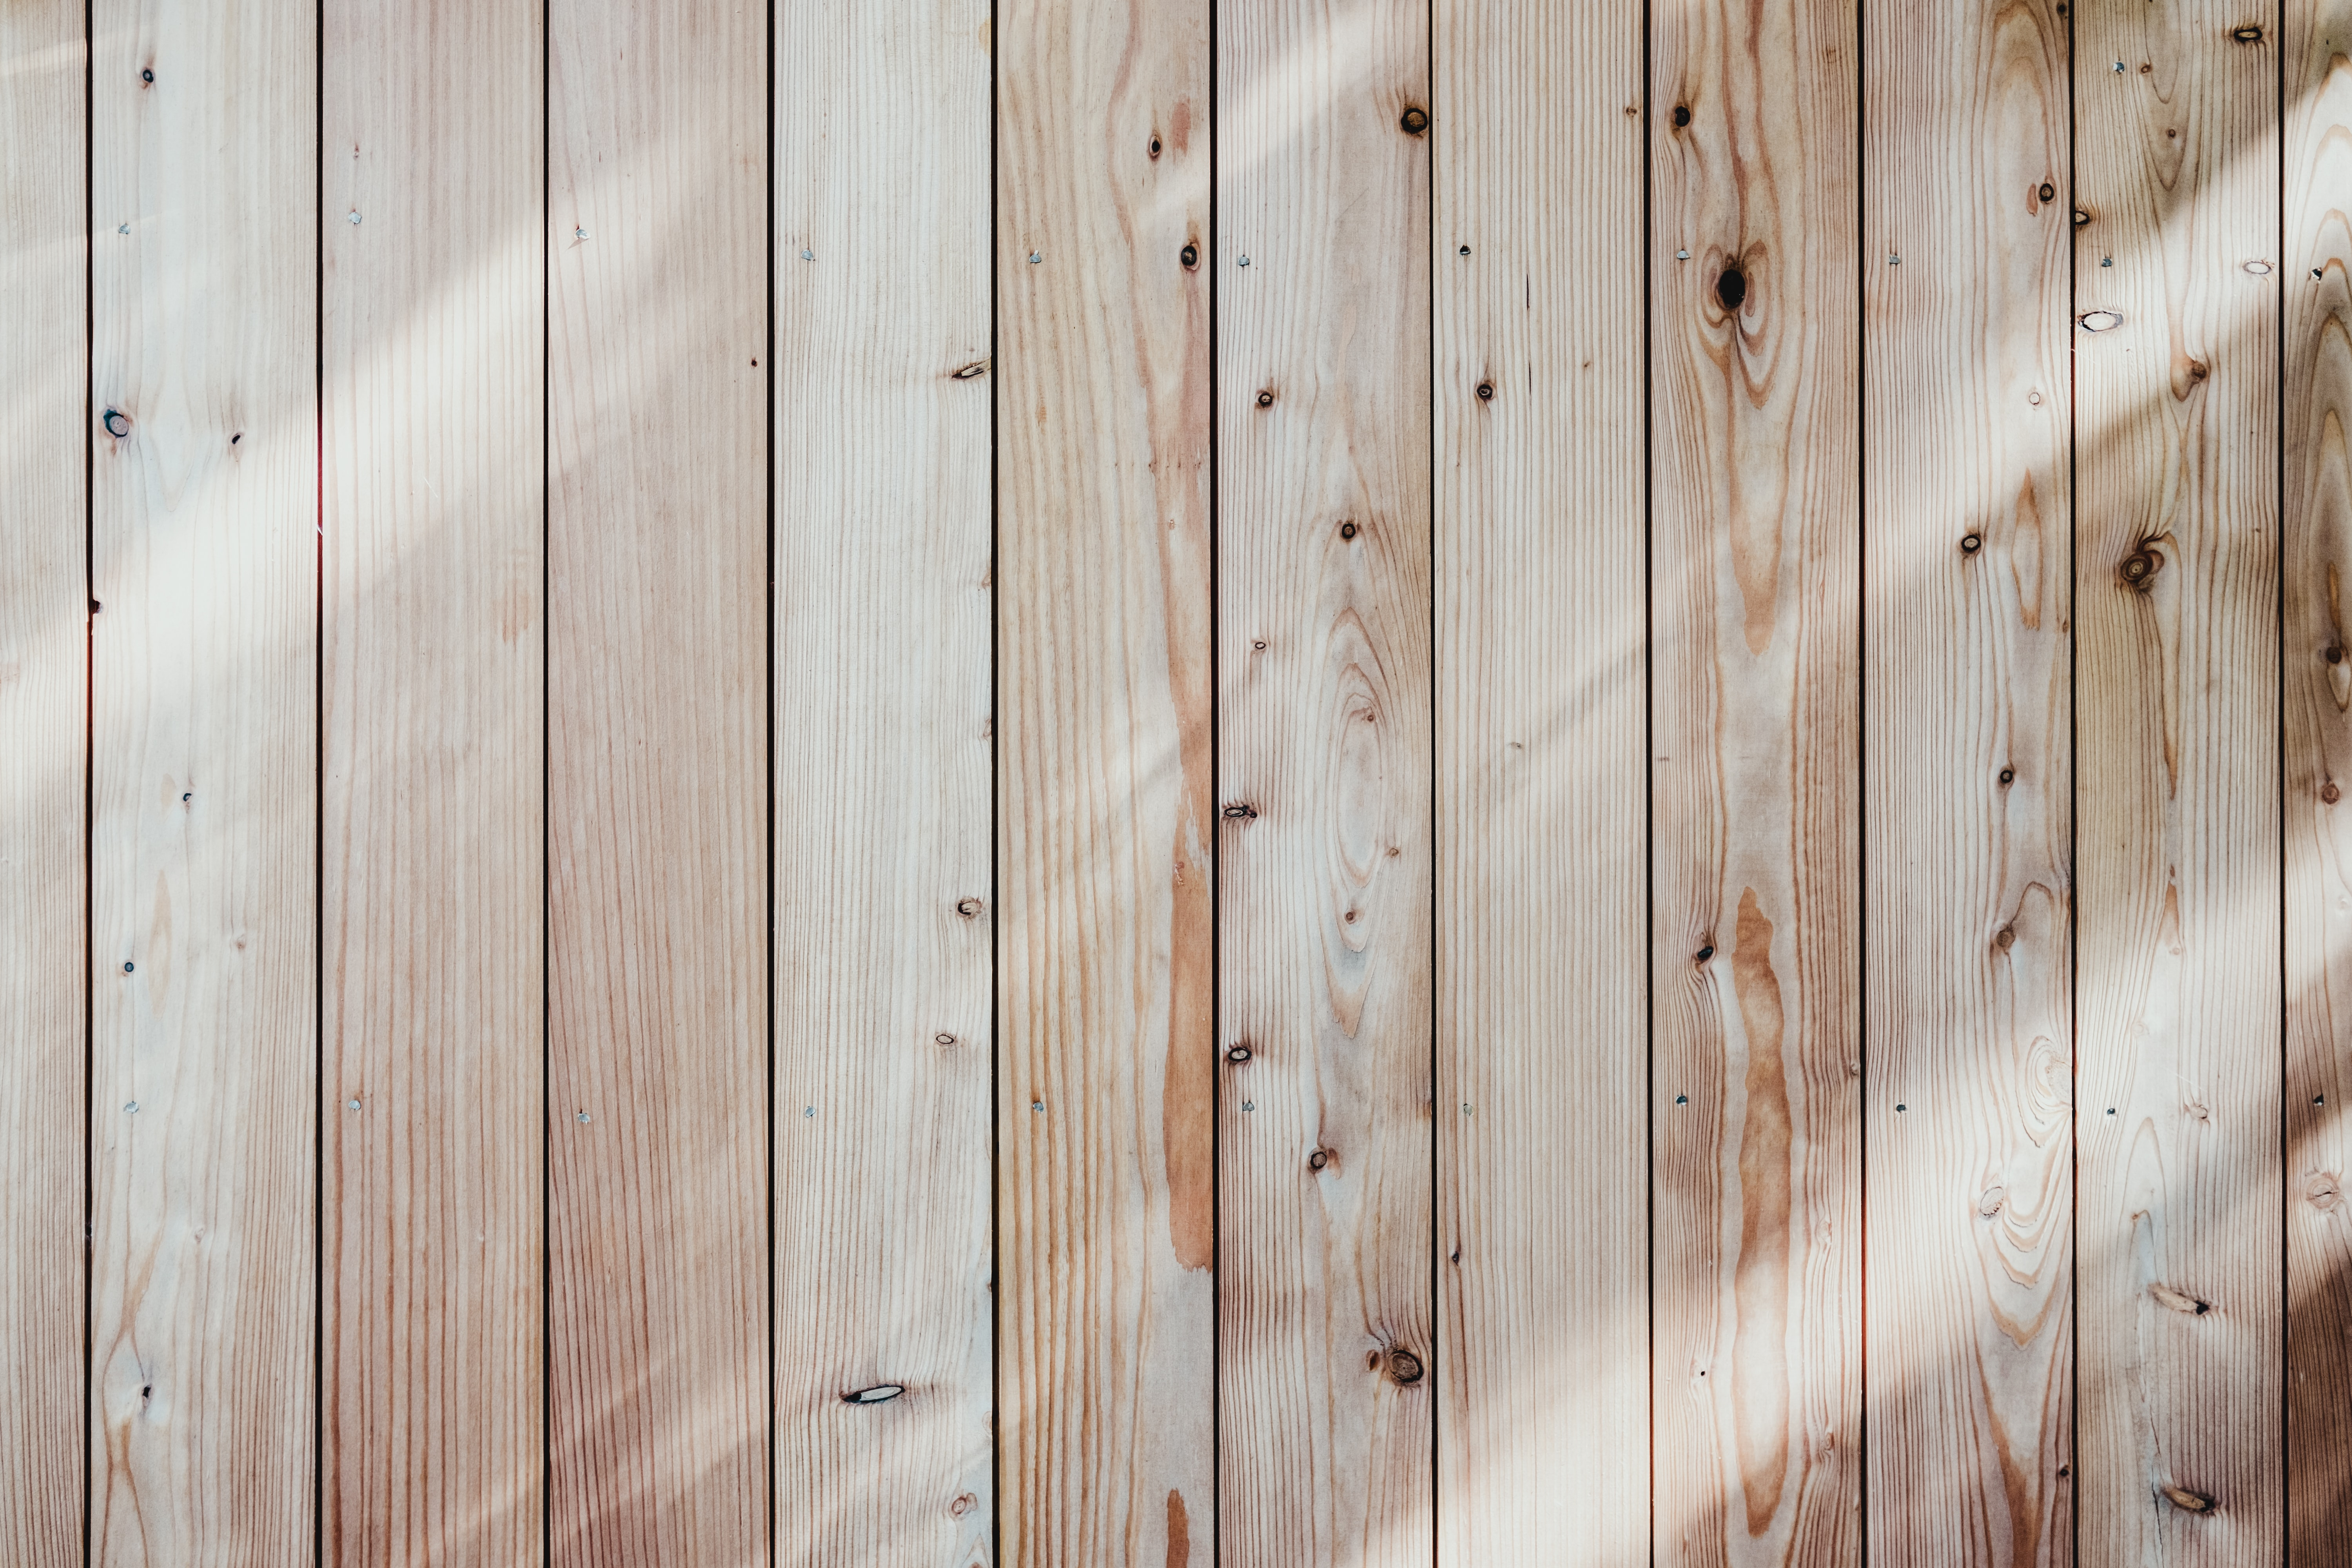 Wood iphone s for parallax wallpapers hd desktop backgrounds